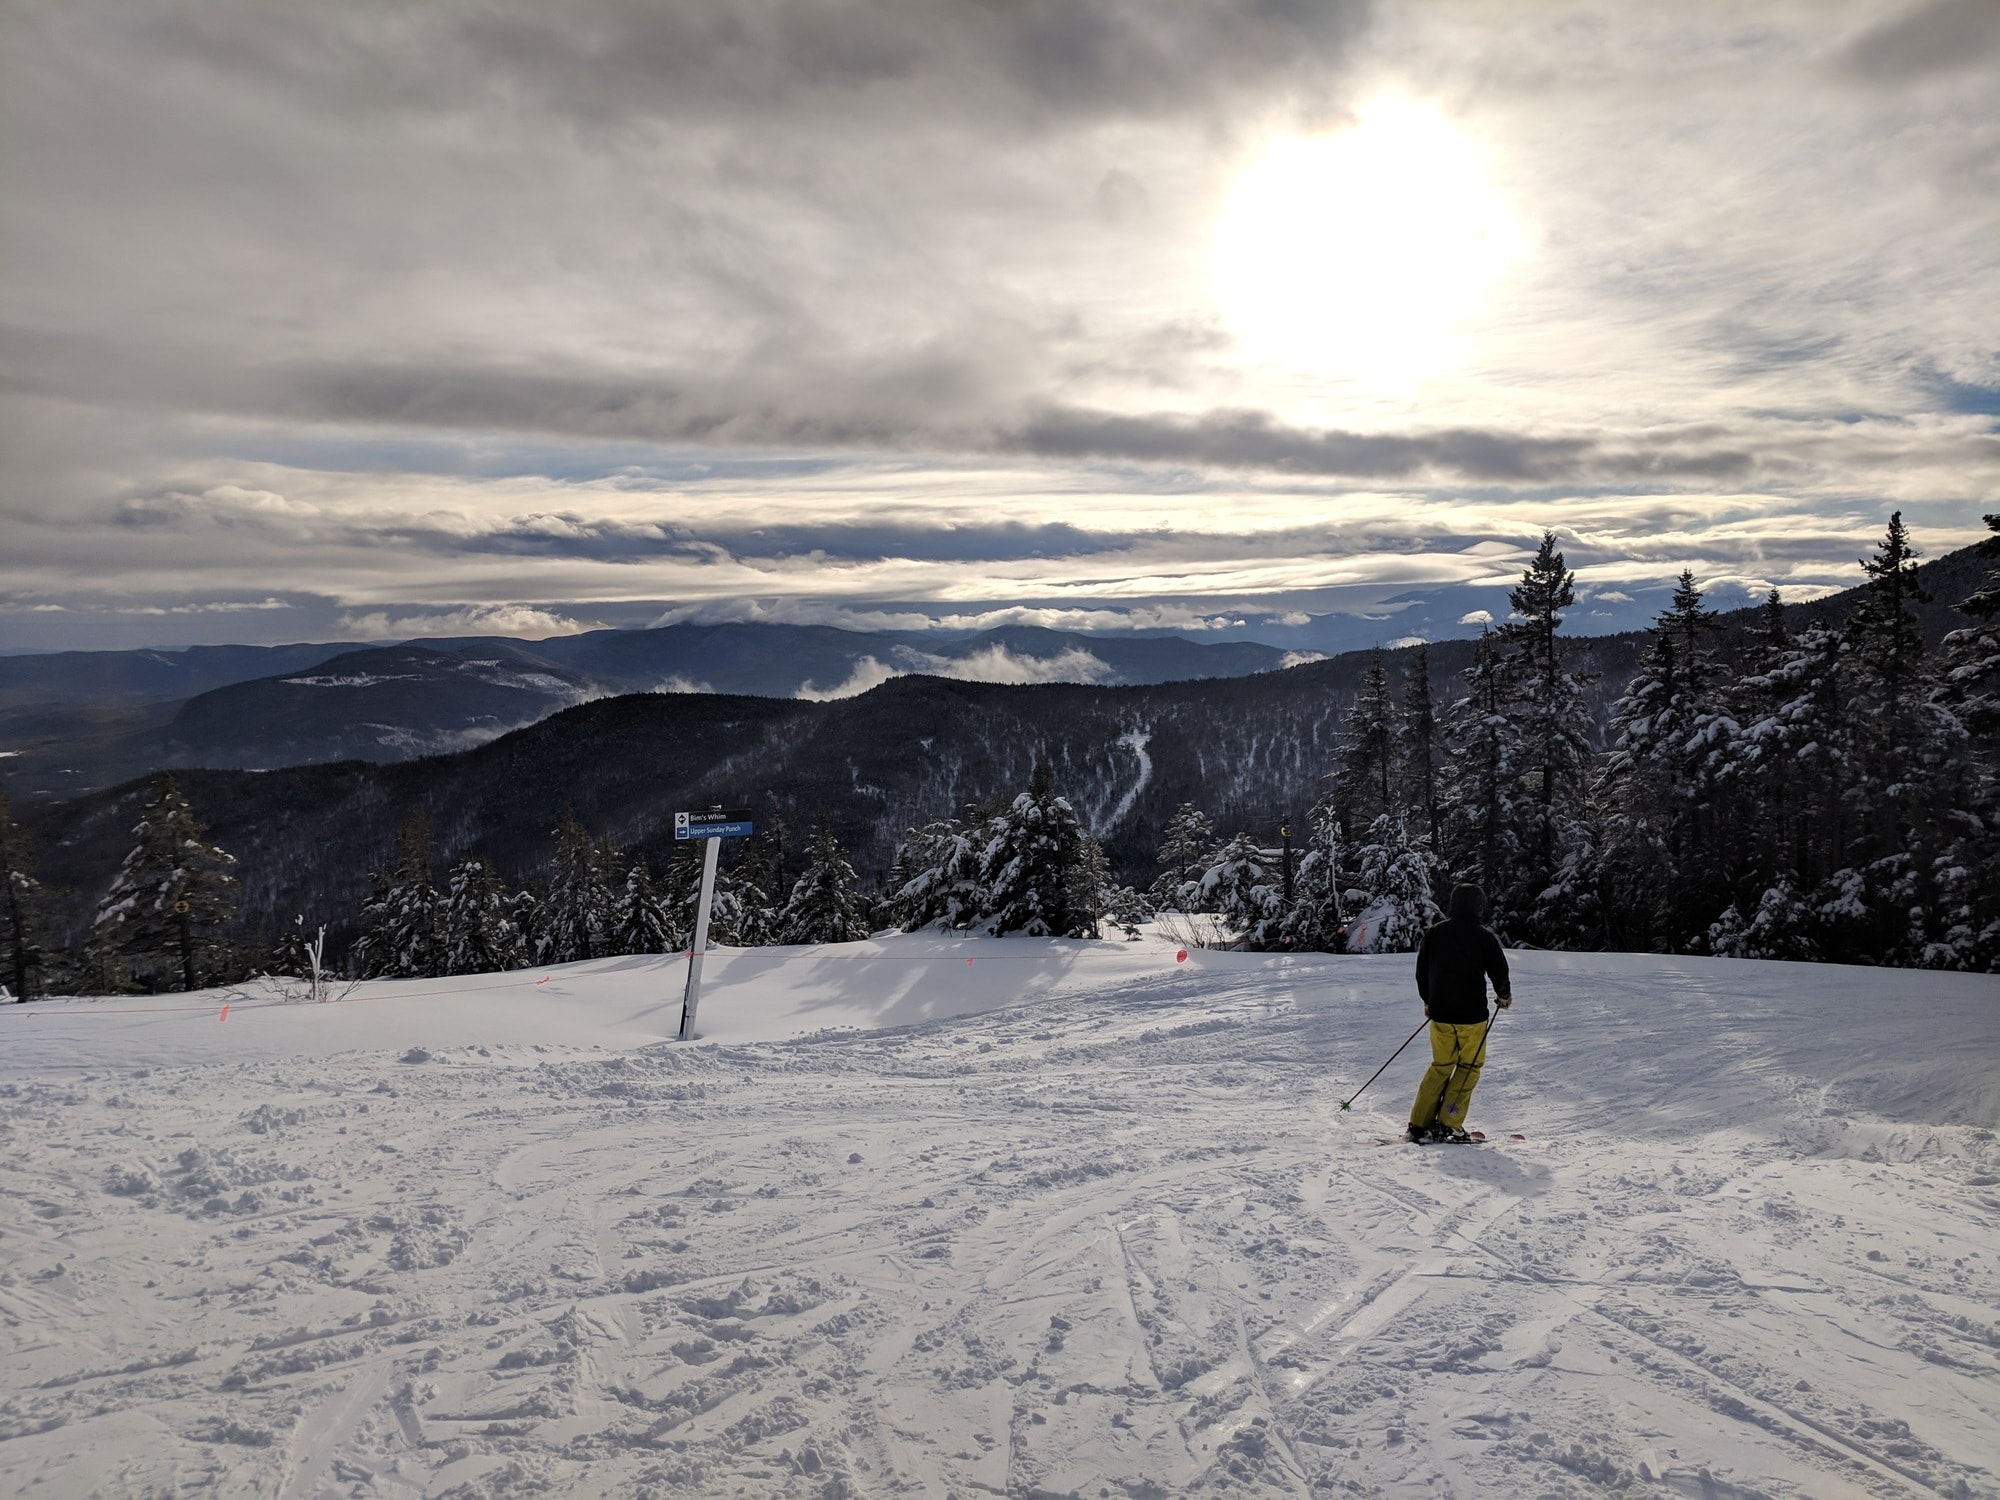 Sunday River / Looking for some great East Coast ski slopes to learn to ski on? Read our list of the best New England ski resorts that are perfect for beginners.